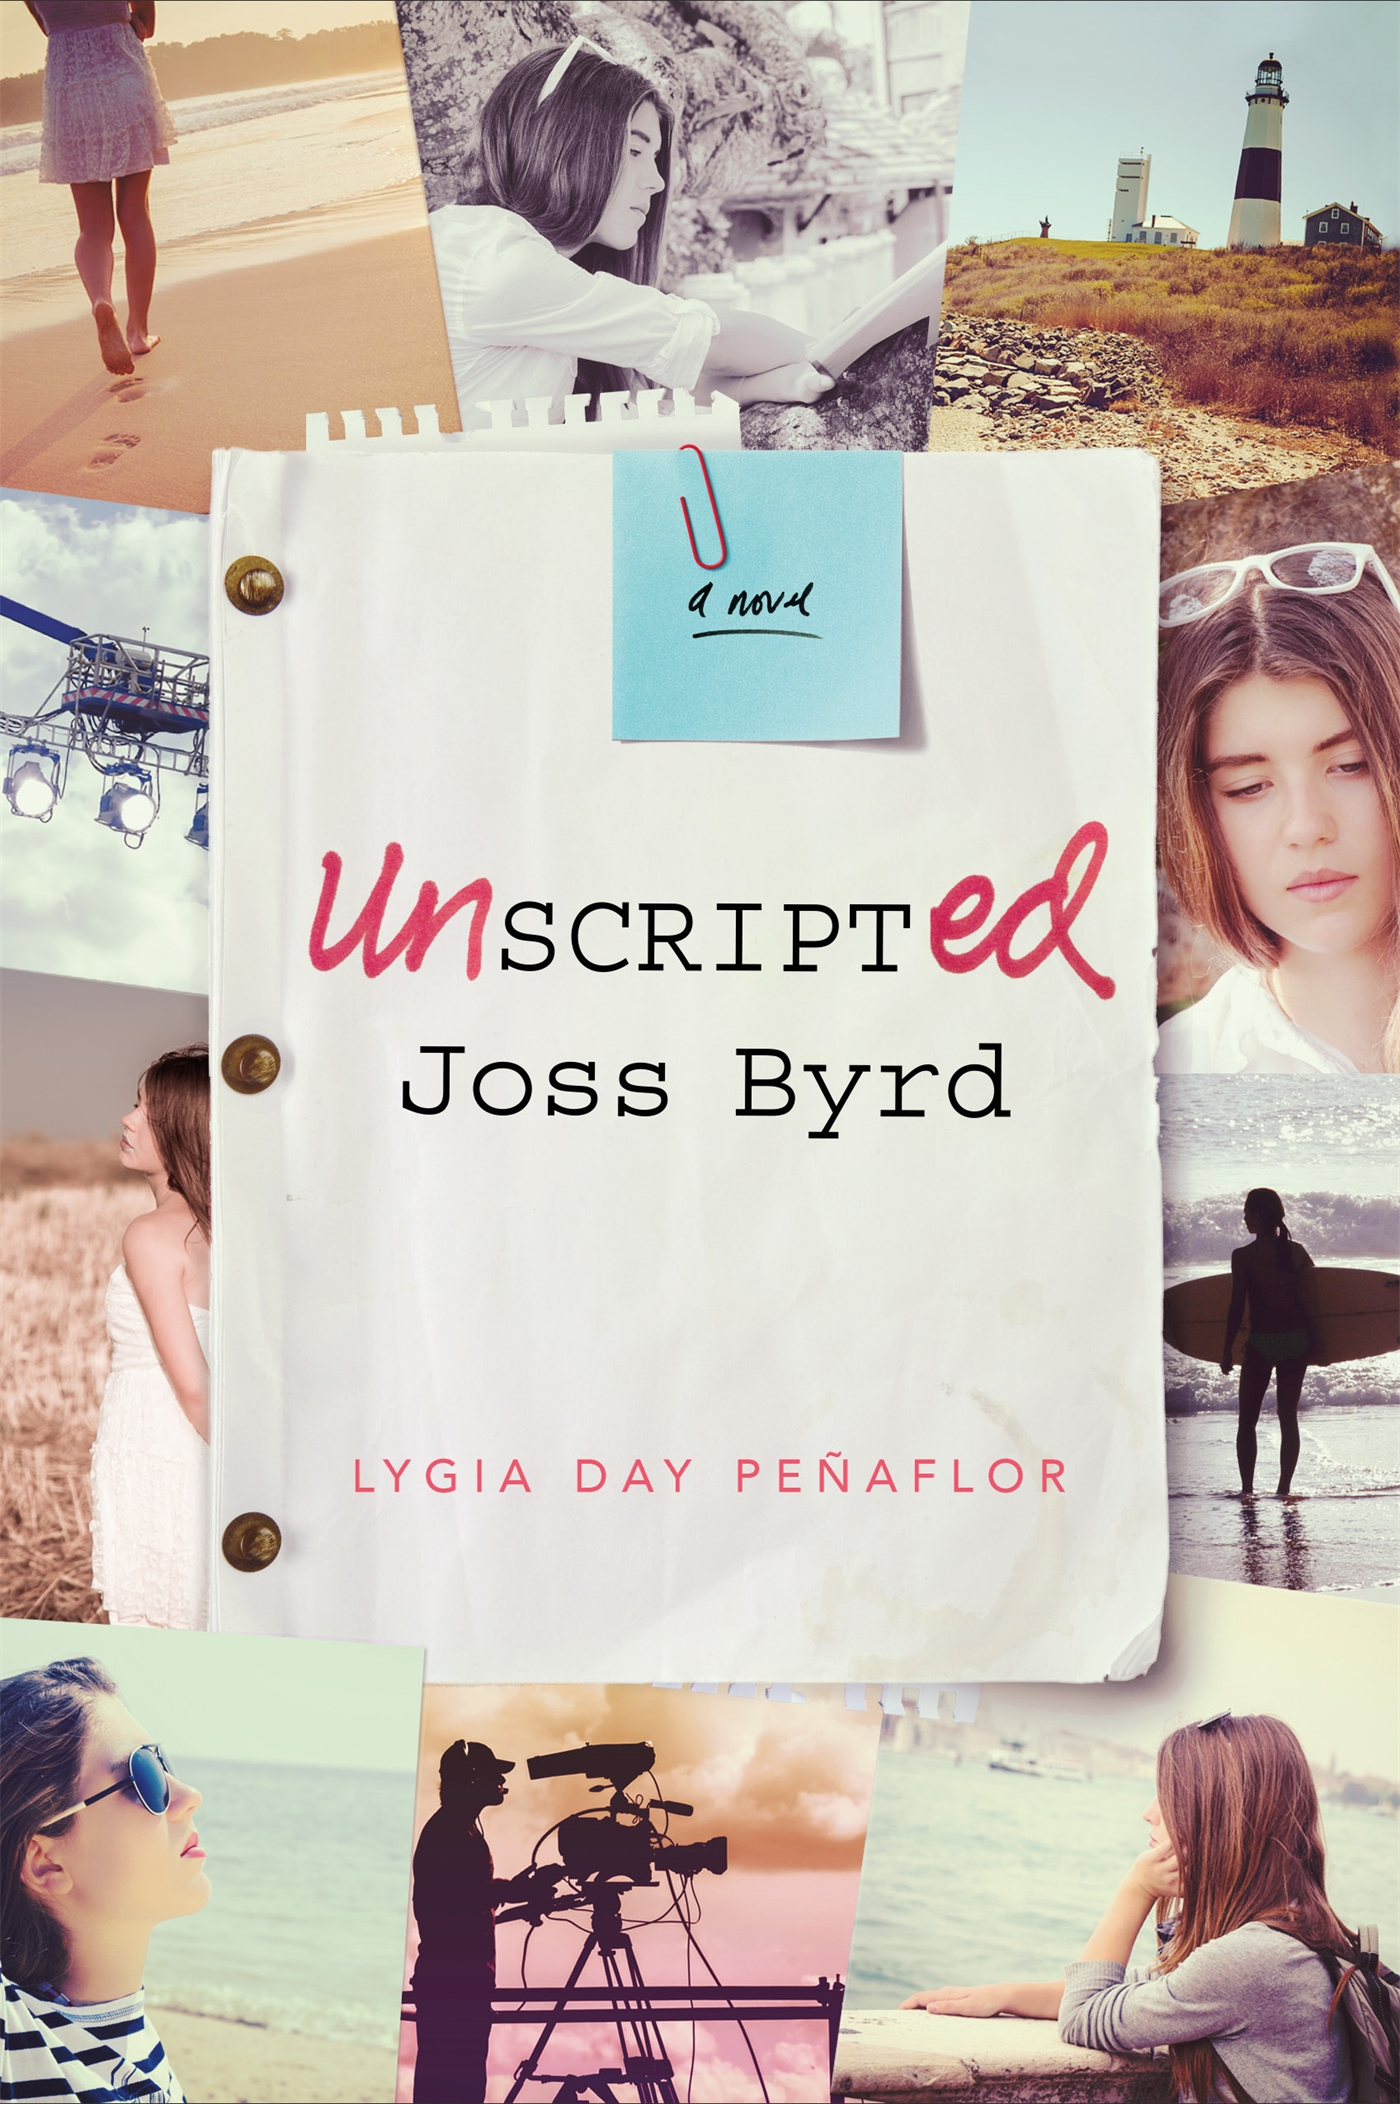 Unscripted Joss Byrd by Lygia Day Peñaflor (23 Books by Filipino Diaspora Authors For Your Shelf)